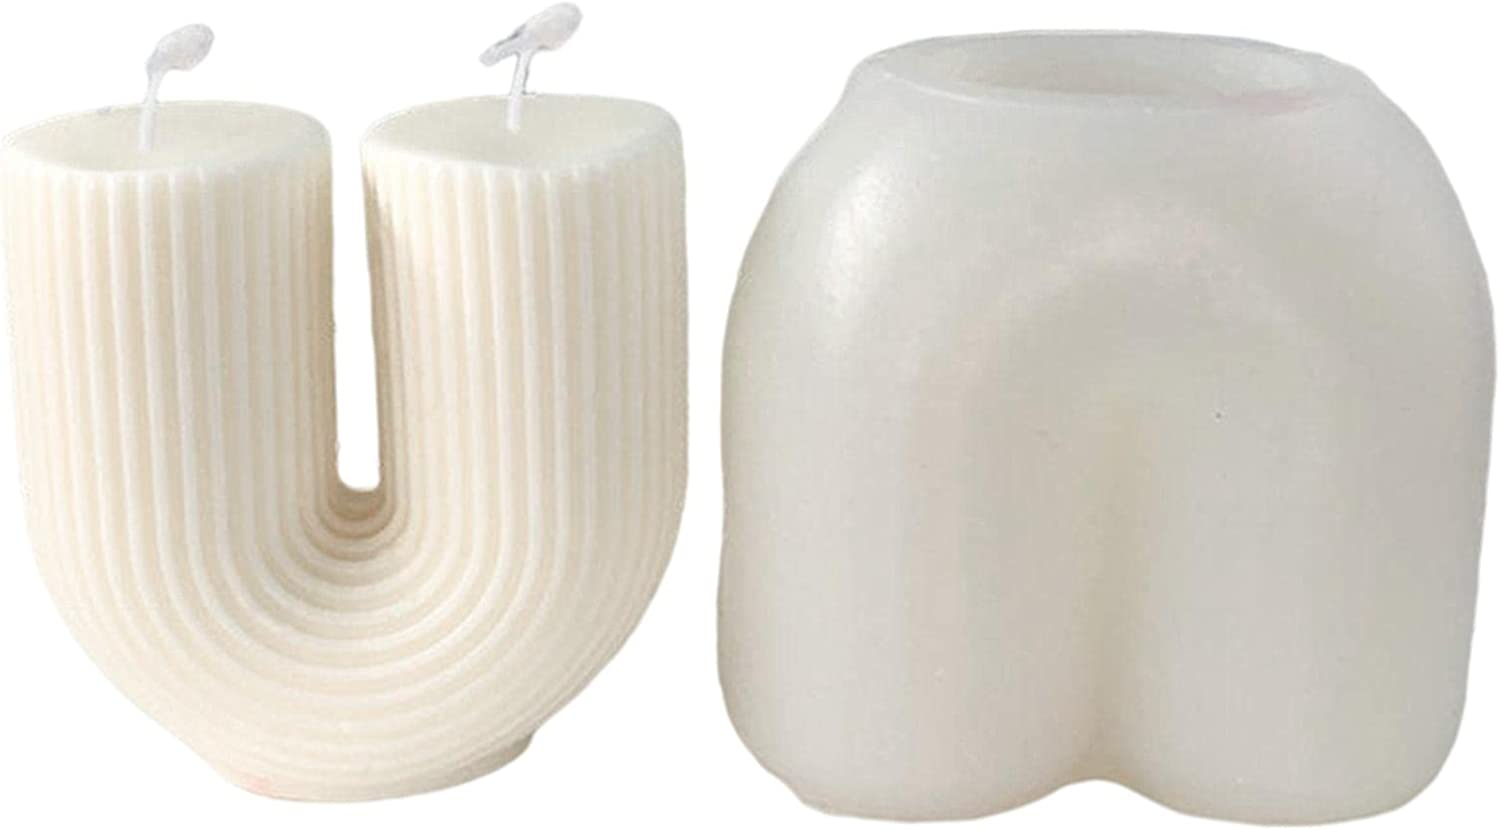 Candle Molds Novel Silicone Mould Limited price sale Jewelry U M Genuine Free Shipping Shape